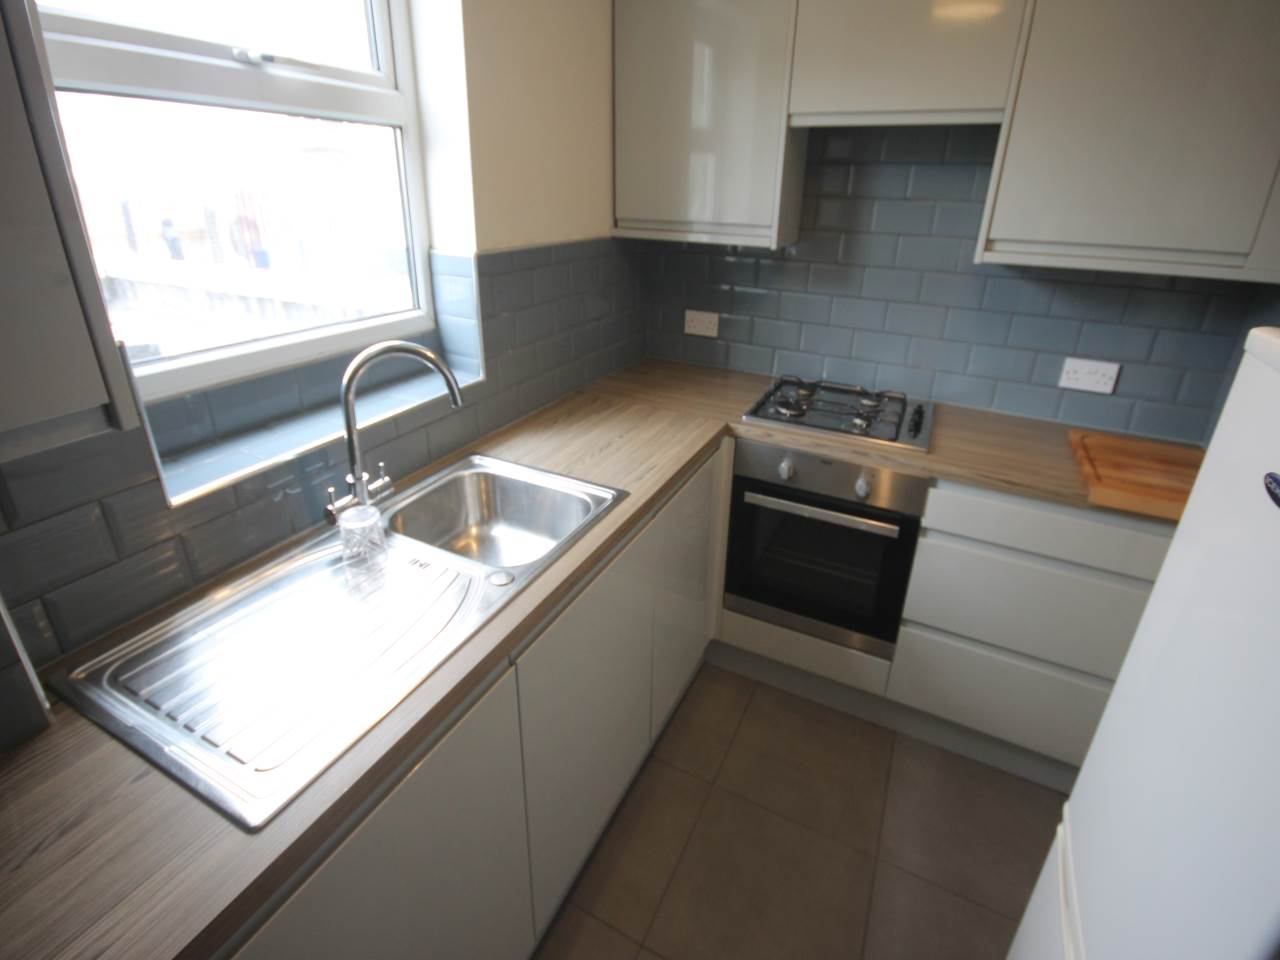 3 bed flat to rent in Walthamstow - Property Image 1